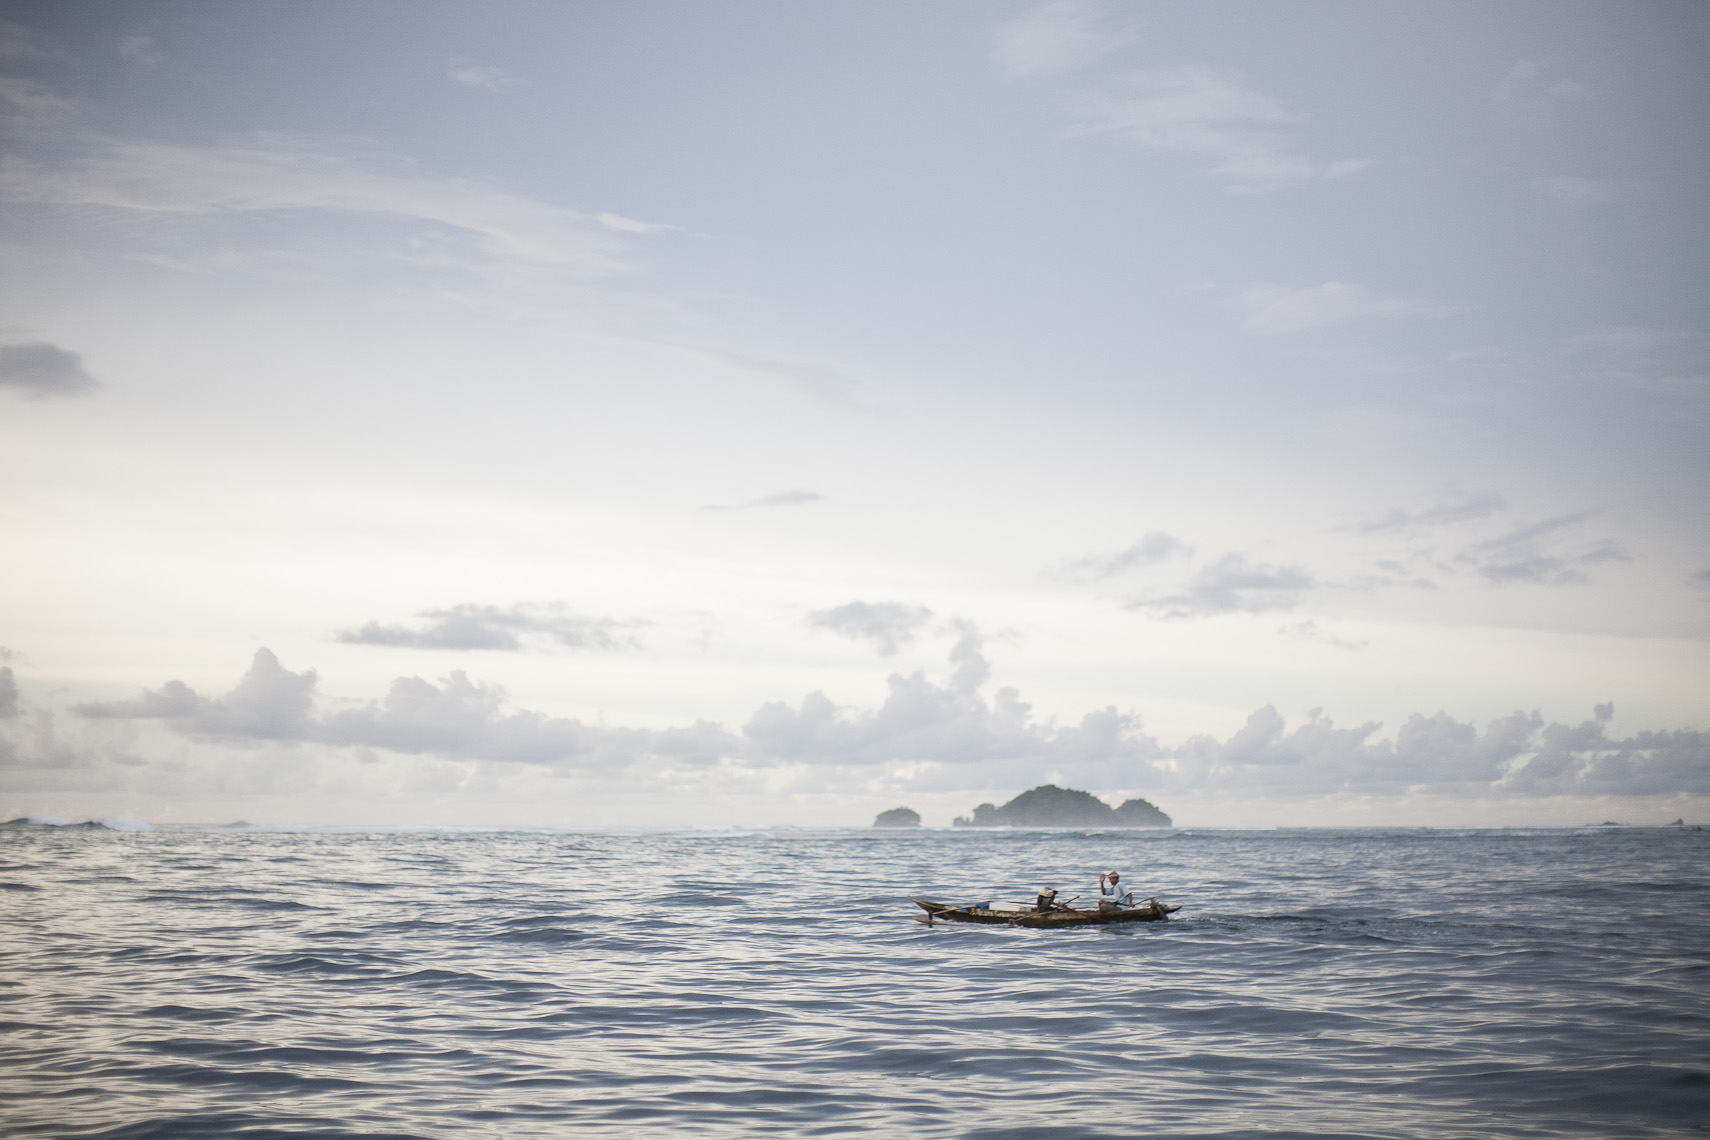 Small Canoe in Vast Ocean